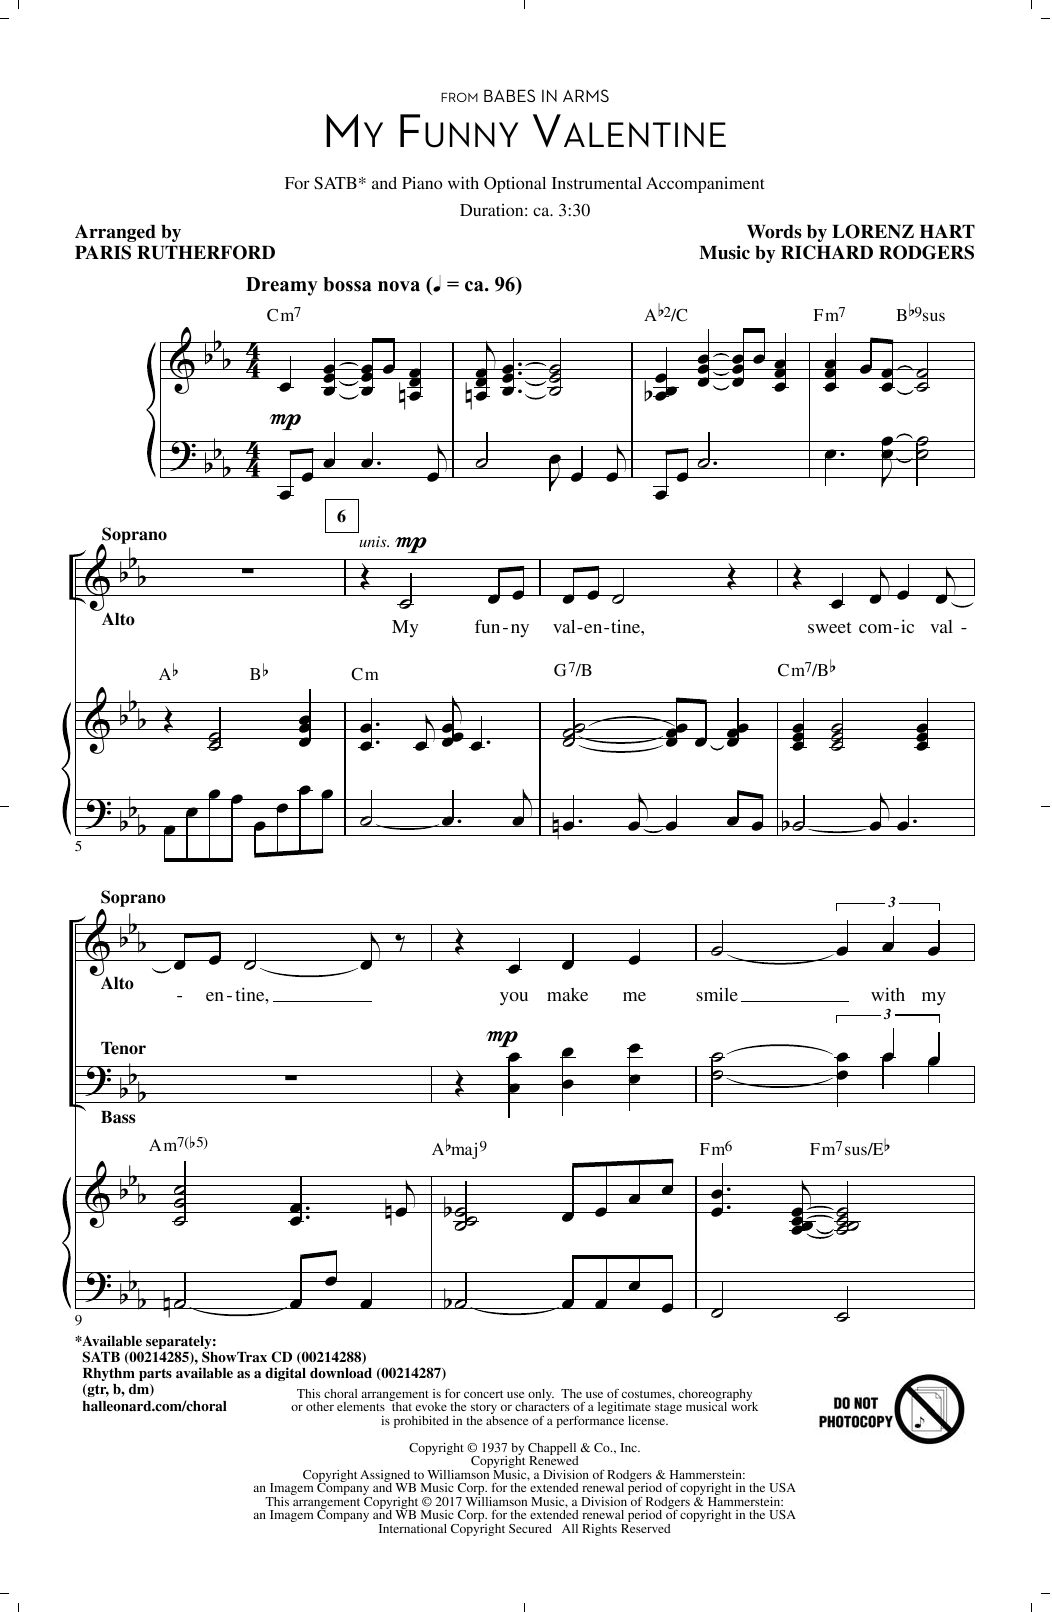 My Funny Valentine (SATB Choir)